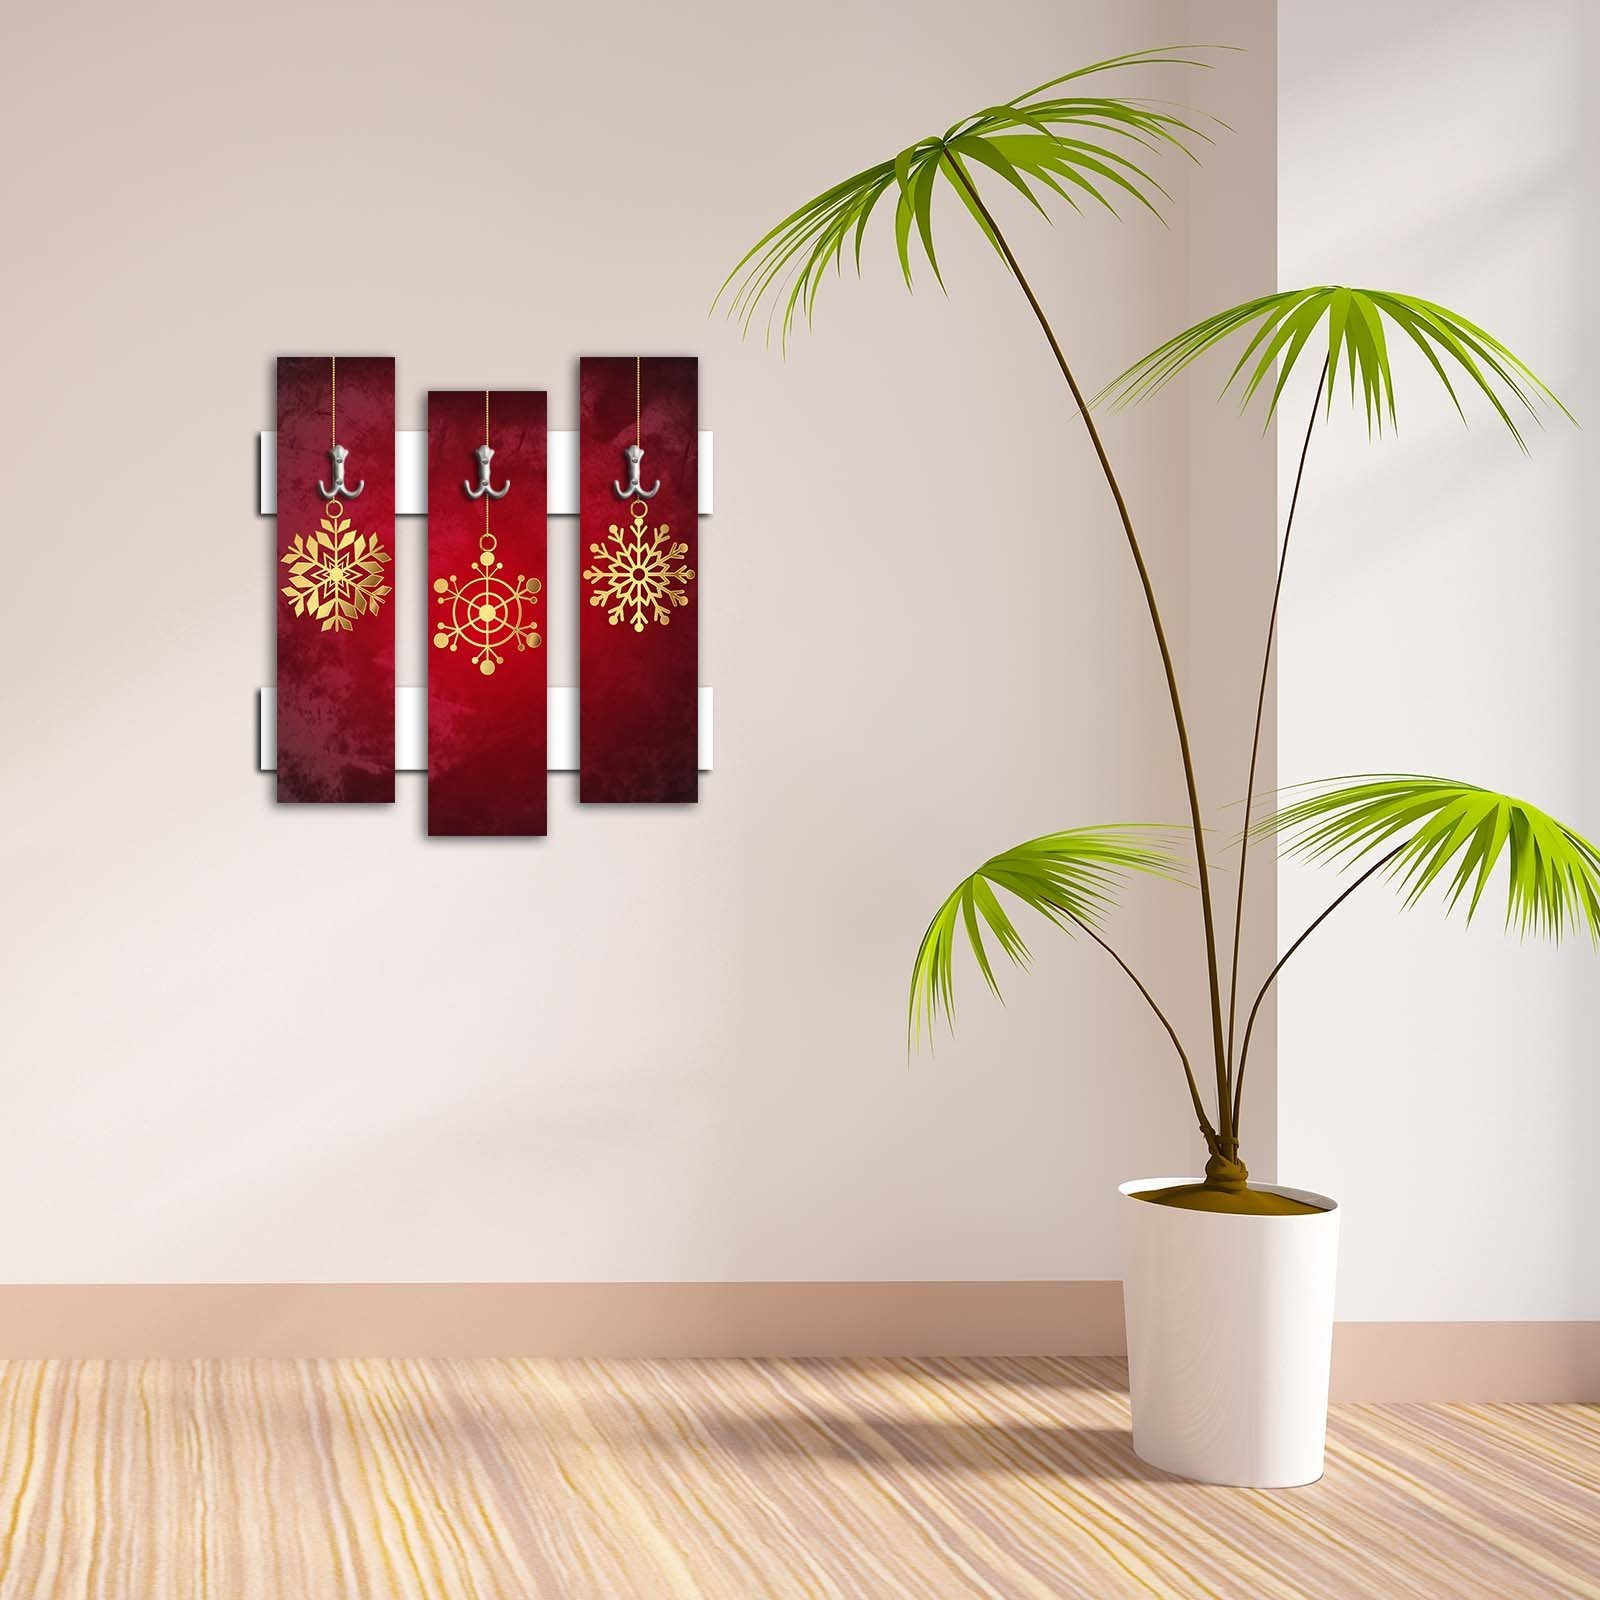 Decorative Wall Hook 3 Pcs Metal Key Holder 100% MDF Mounted Hanging Home Decor, Perfect for Foyers Entryway, Door Coats Hats Towels Scarfs Bags Golden Snowflake Claret Red Background Christmas